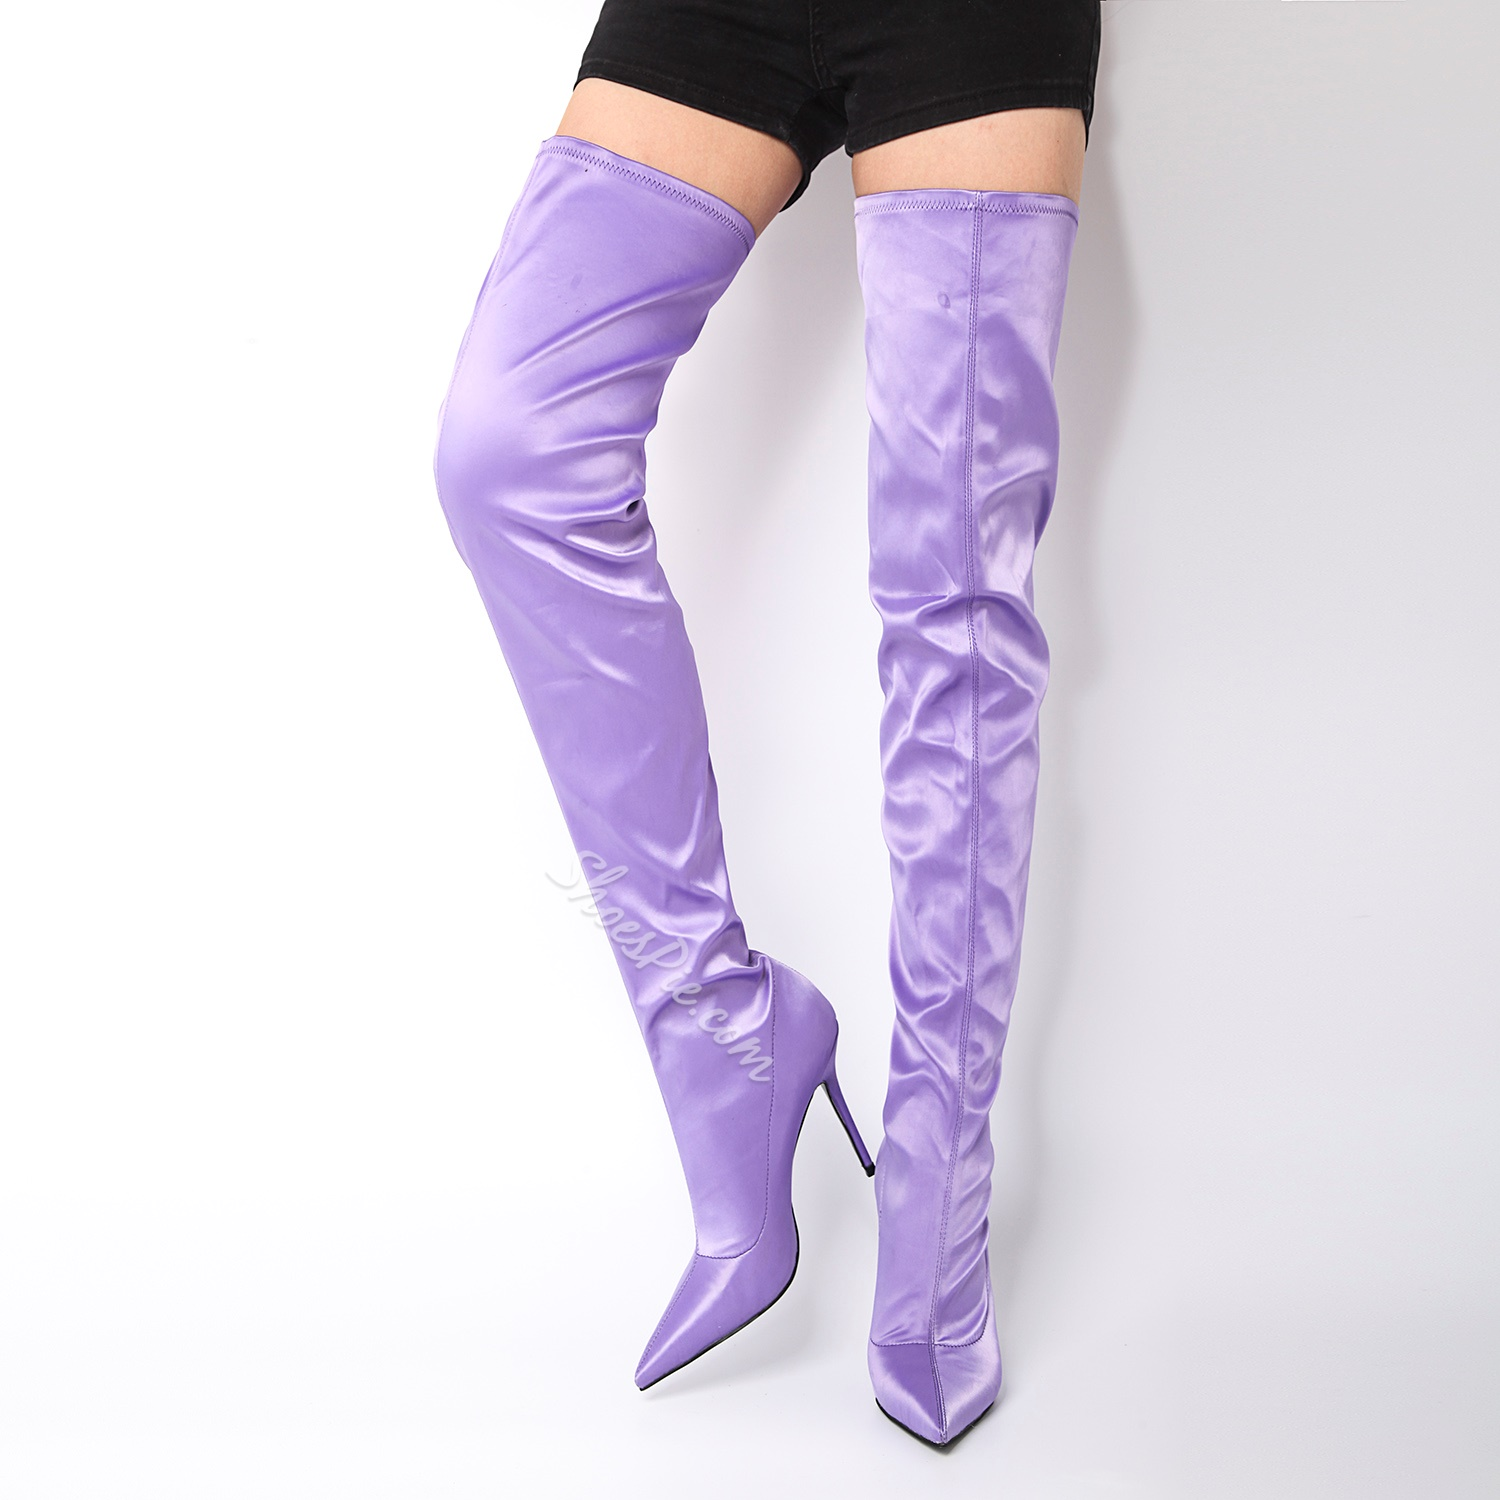 Shoespie Pointed Toe Slip-On Stiletto Heel Knee High Boot